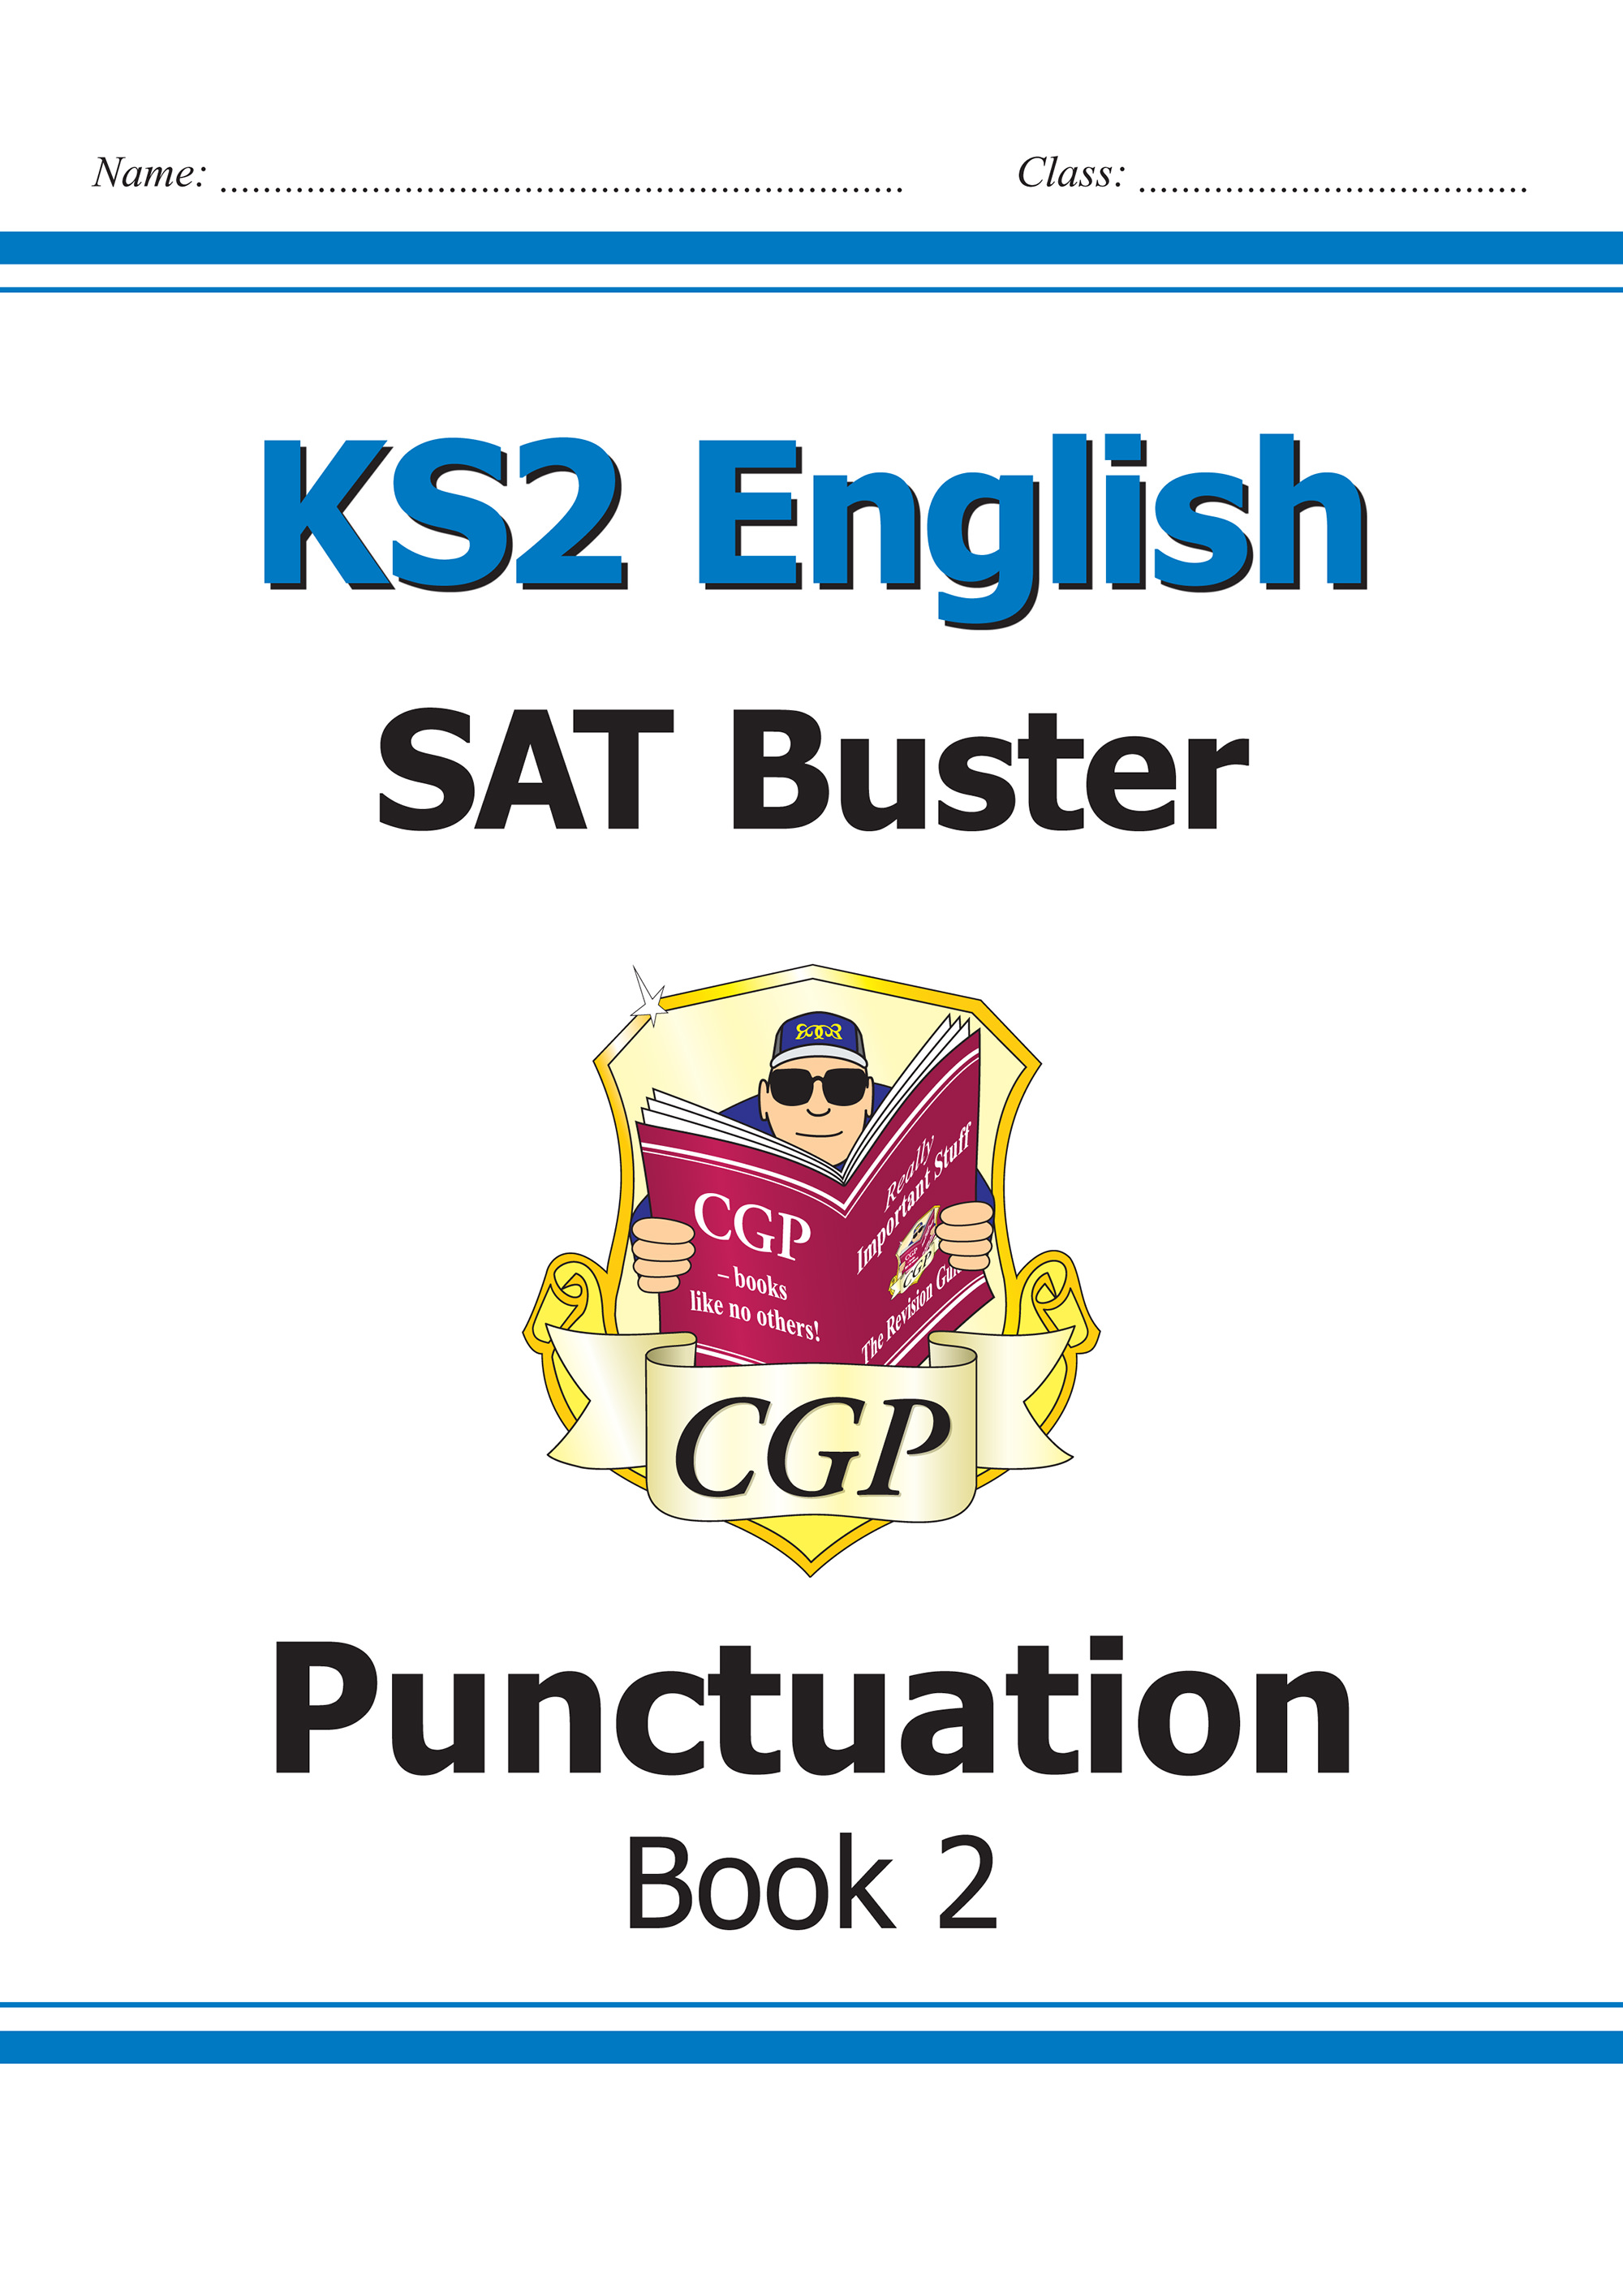 E6P222 - KS2 English SAT Buster - Punctuation Book 2 (for the 2020 tests)